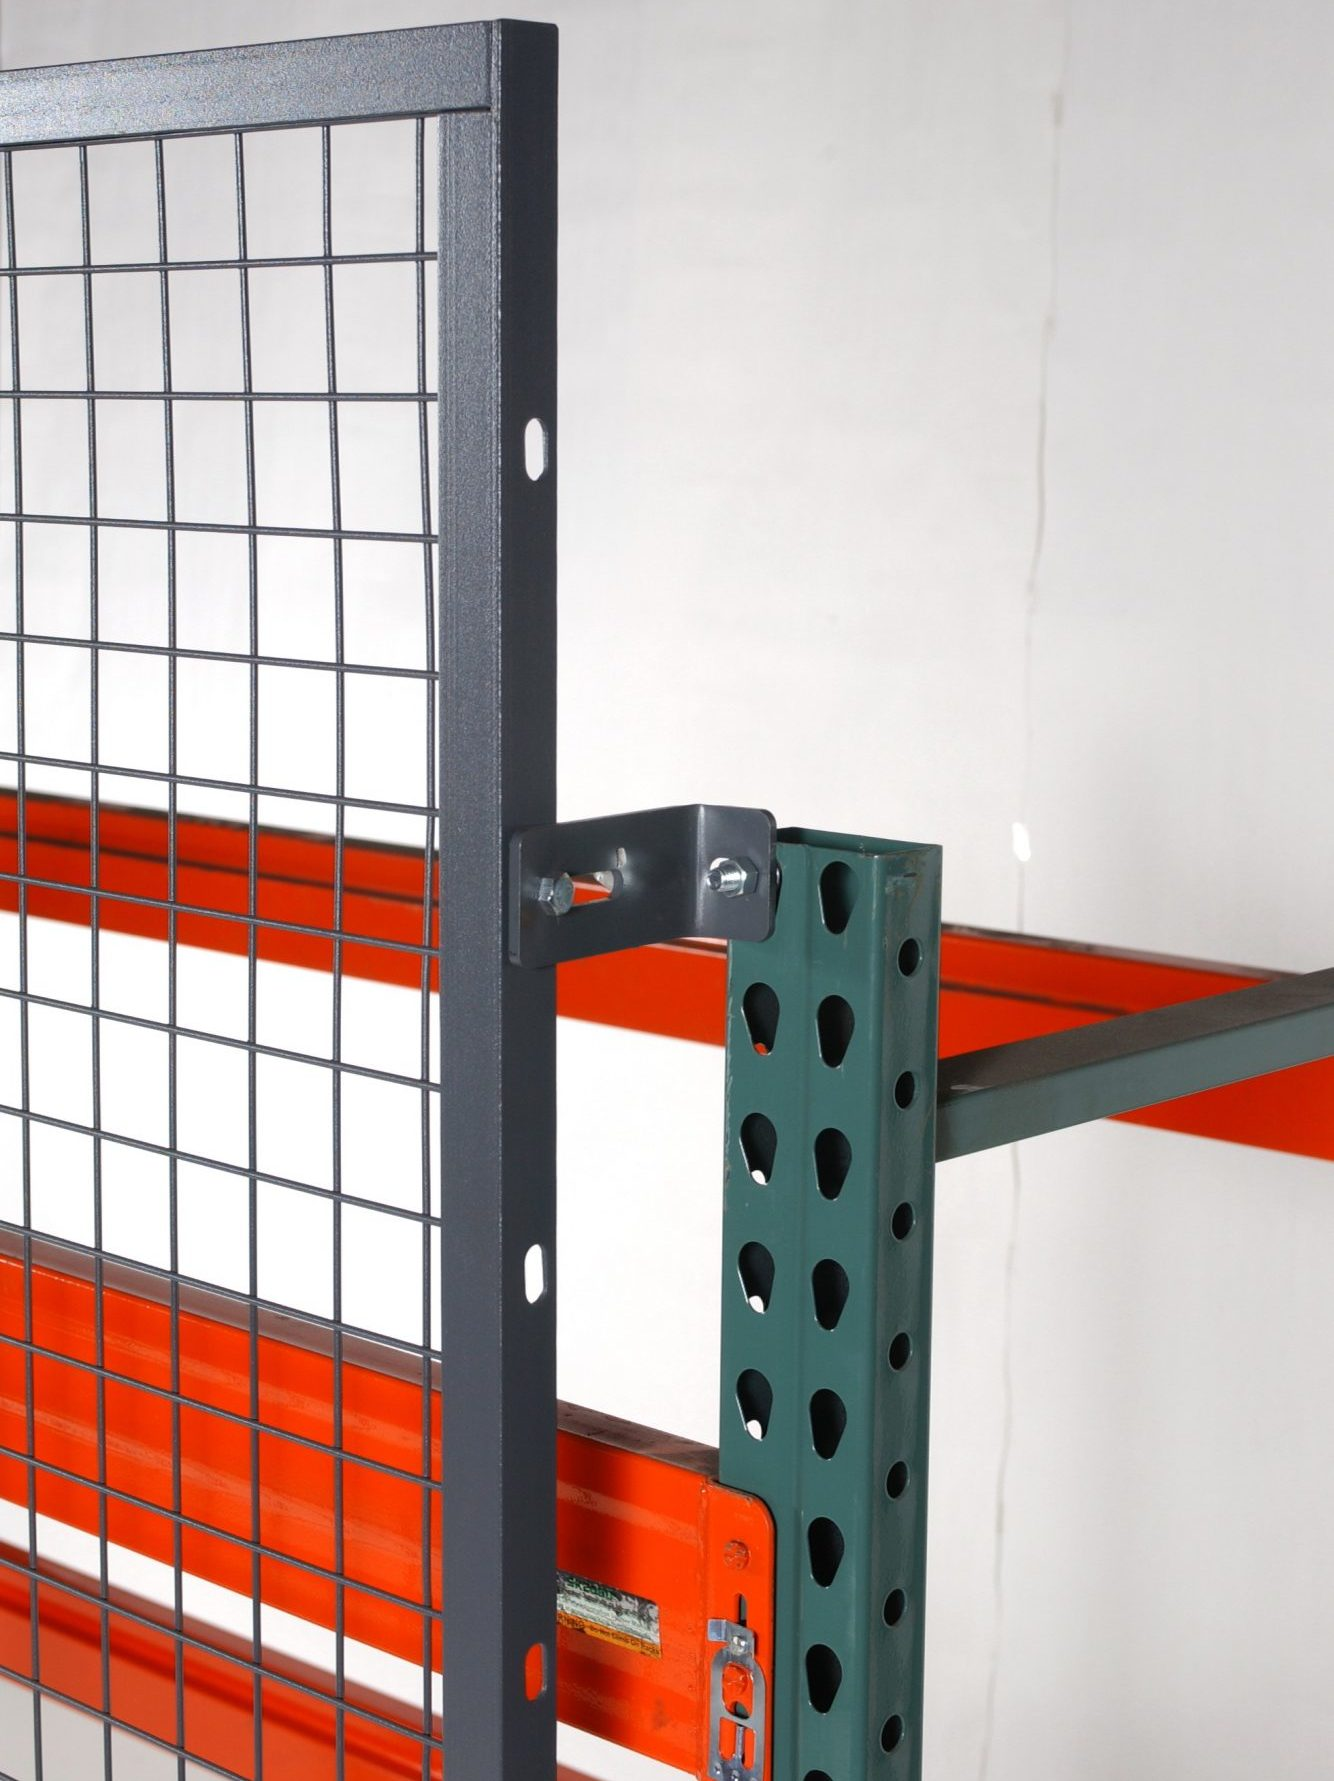 rackback safety panels